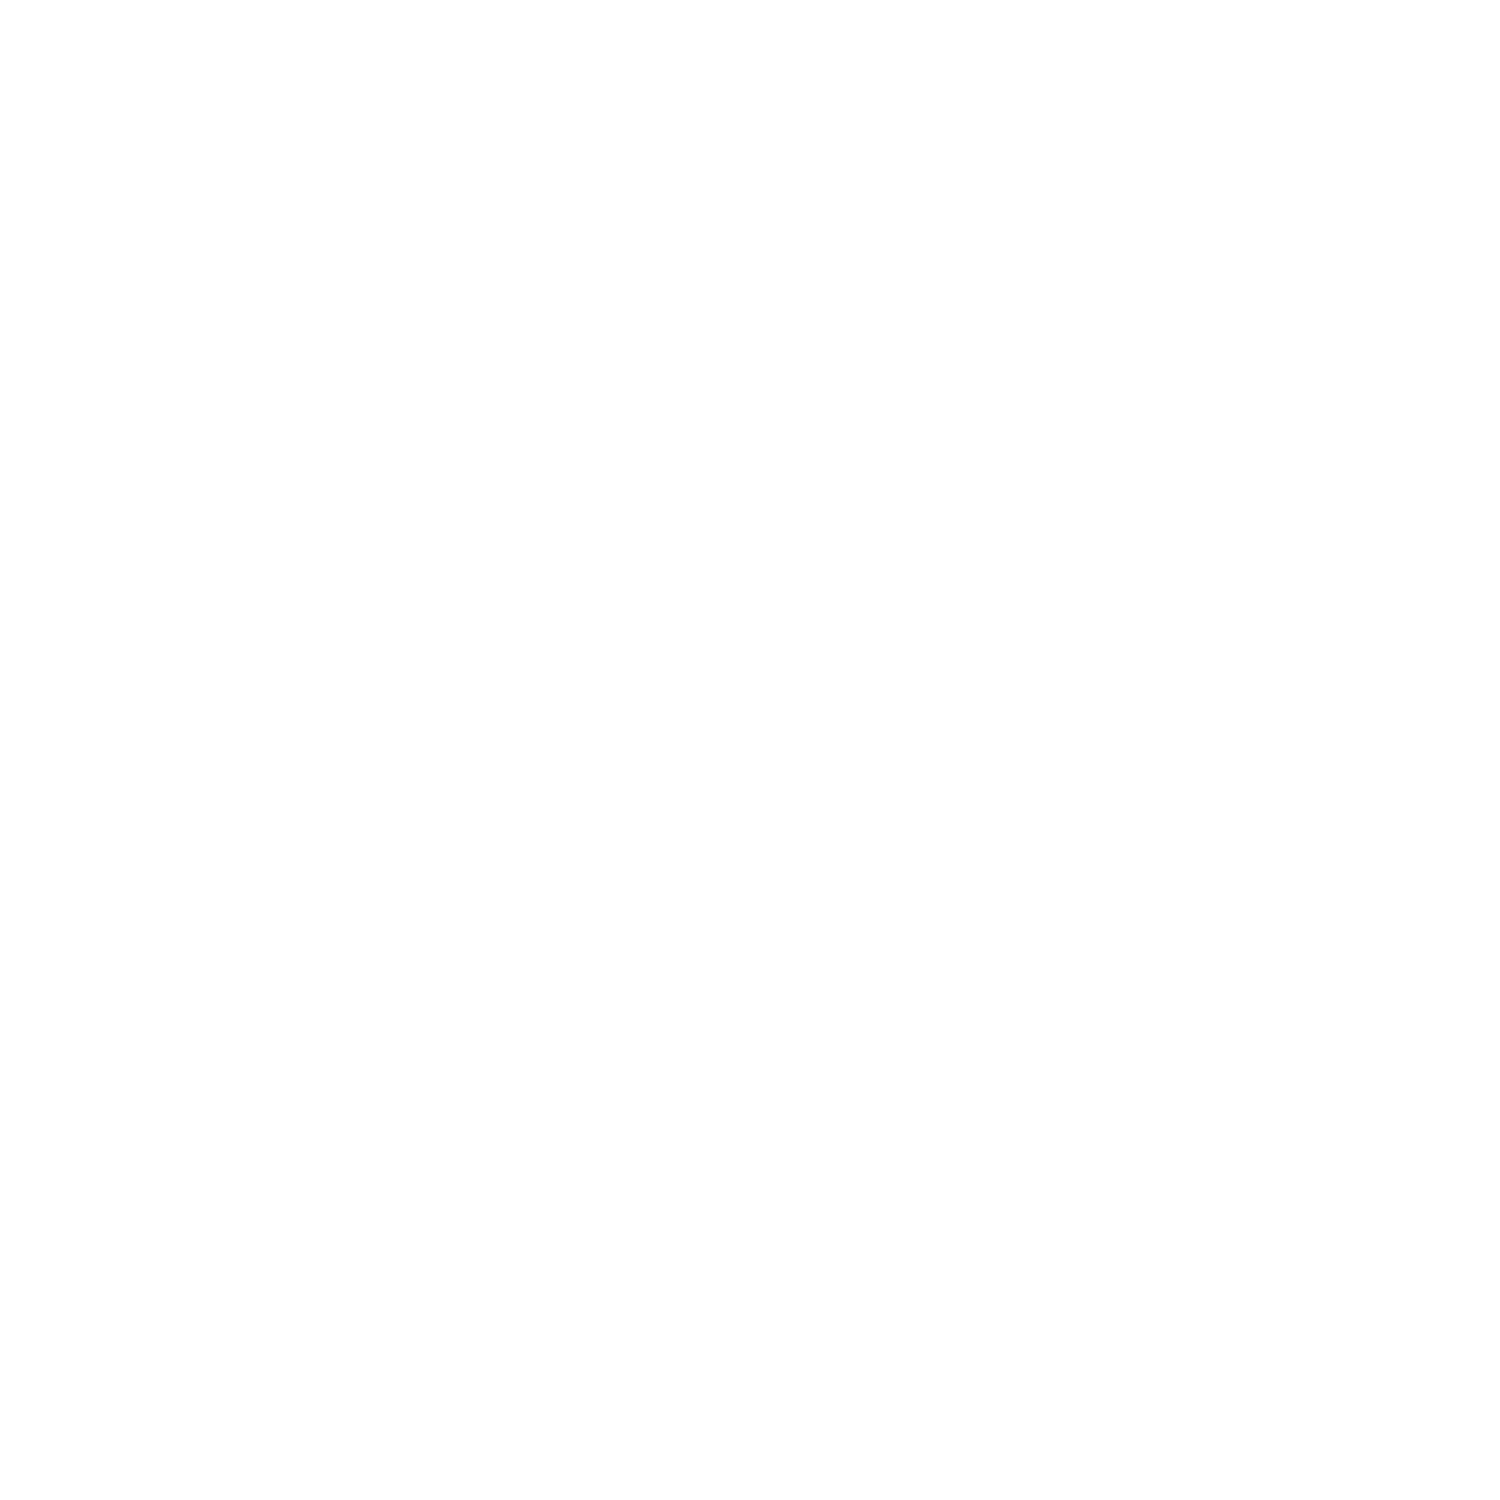 Turtle Hare Farm